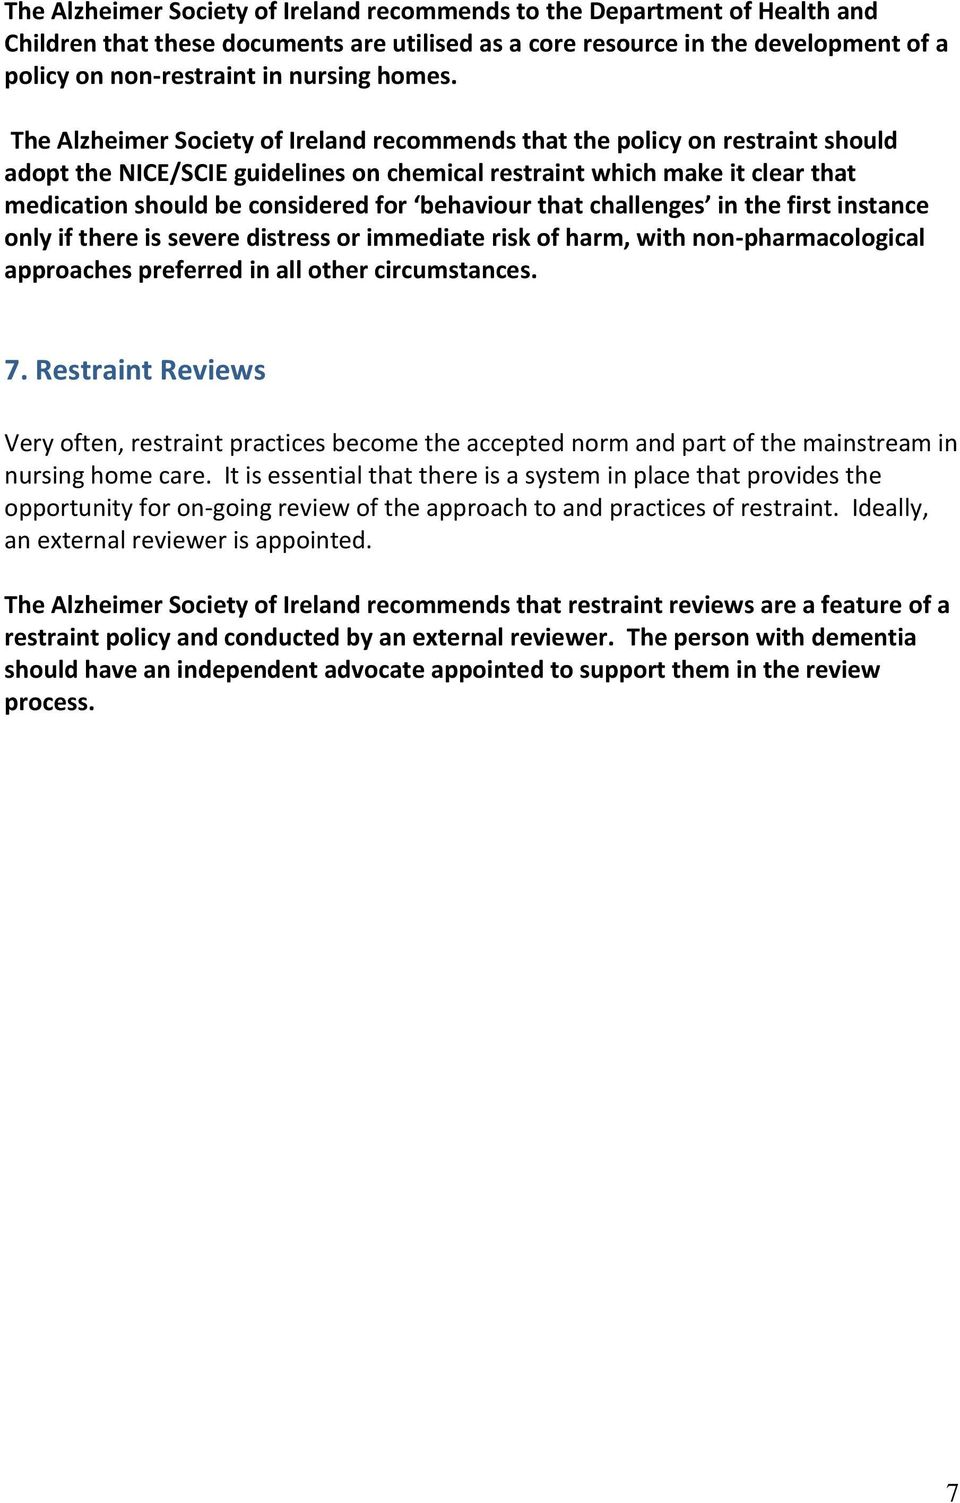 The Alzheimer Society of Ireland recommends that the policy on restraint should adopt the NICE/SCIE guidelines on chemical restraint which make it clear that medication should be considered for